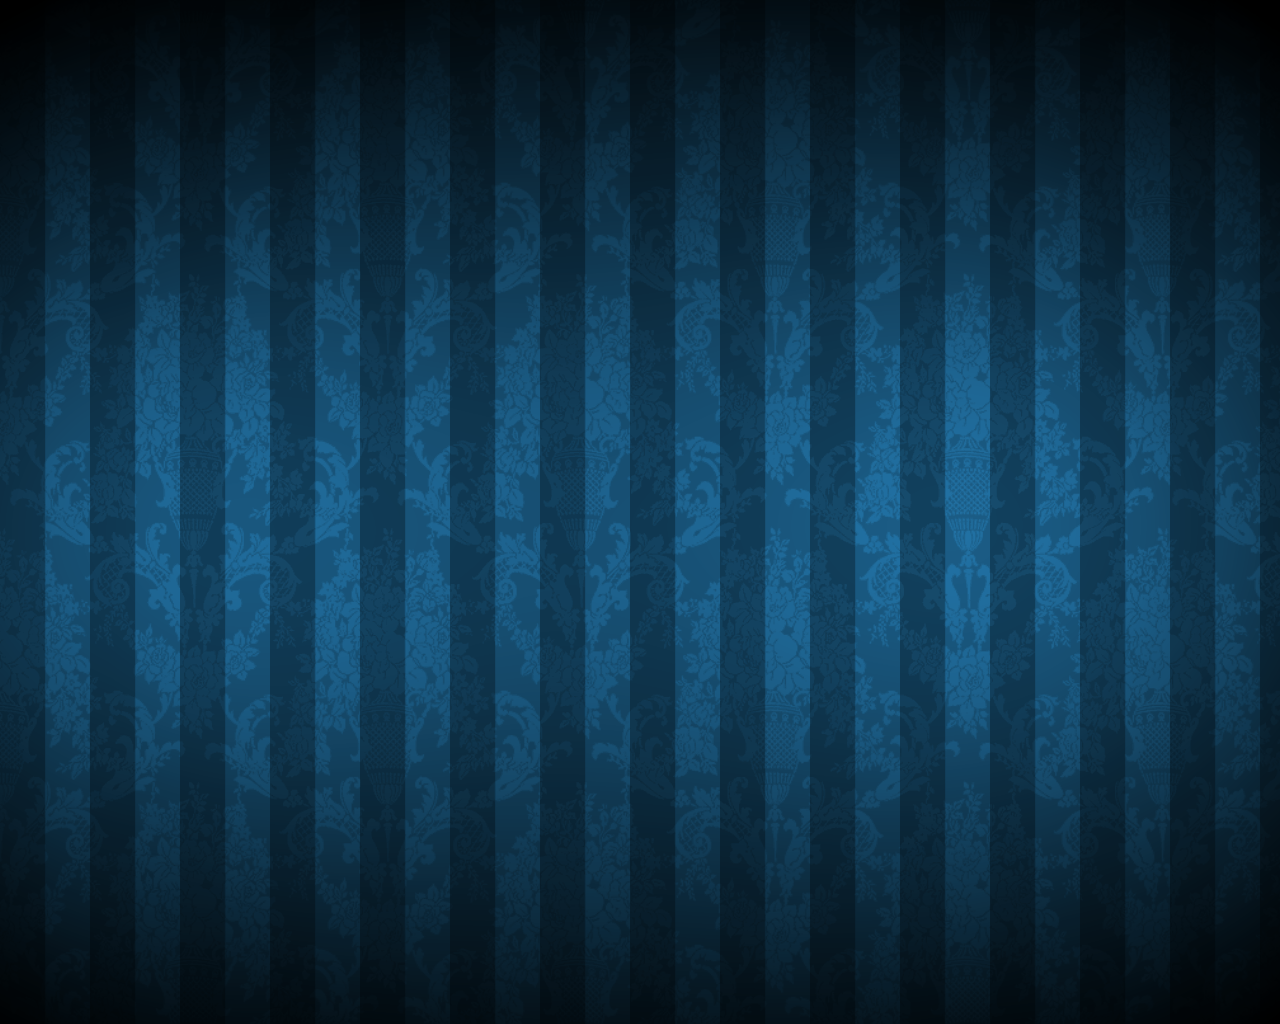 Black And Blue Striped Wallpaper